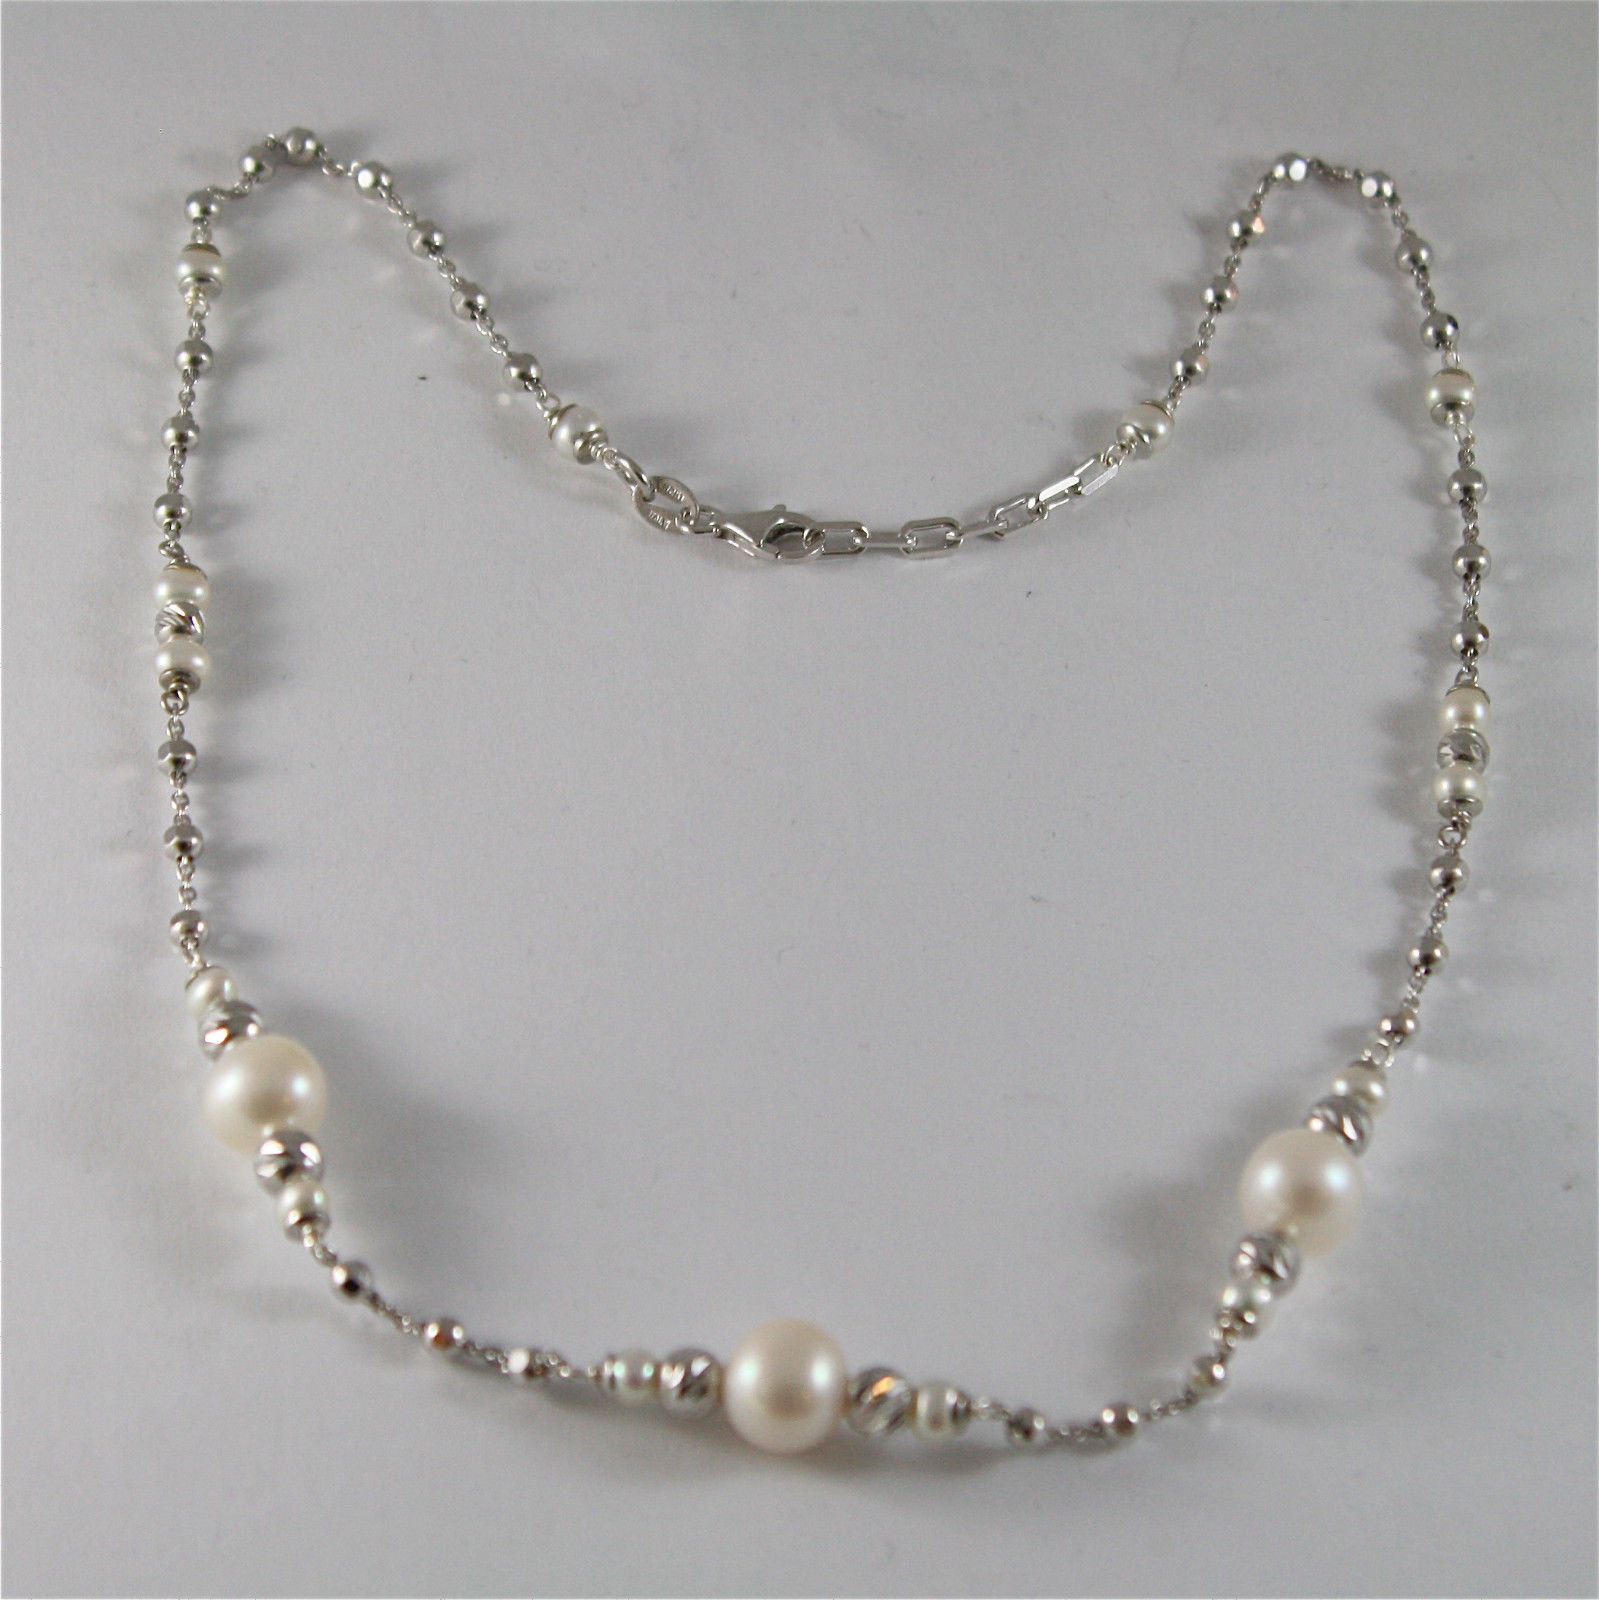 925 SILVER NECKLACE WITH 8 MM ROUND FW PEARL AND FACETED BALLS